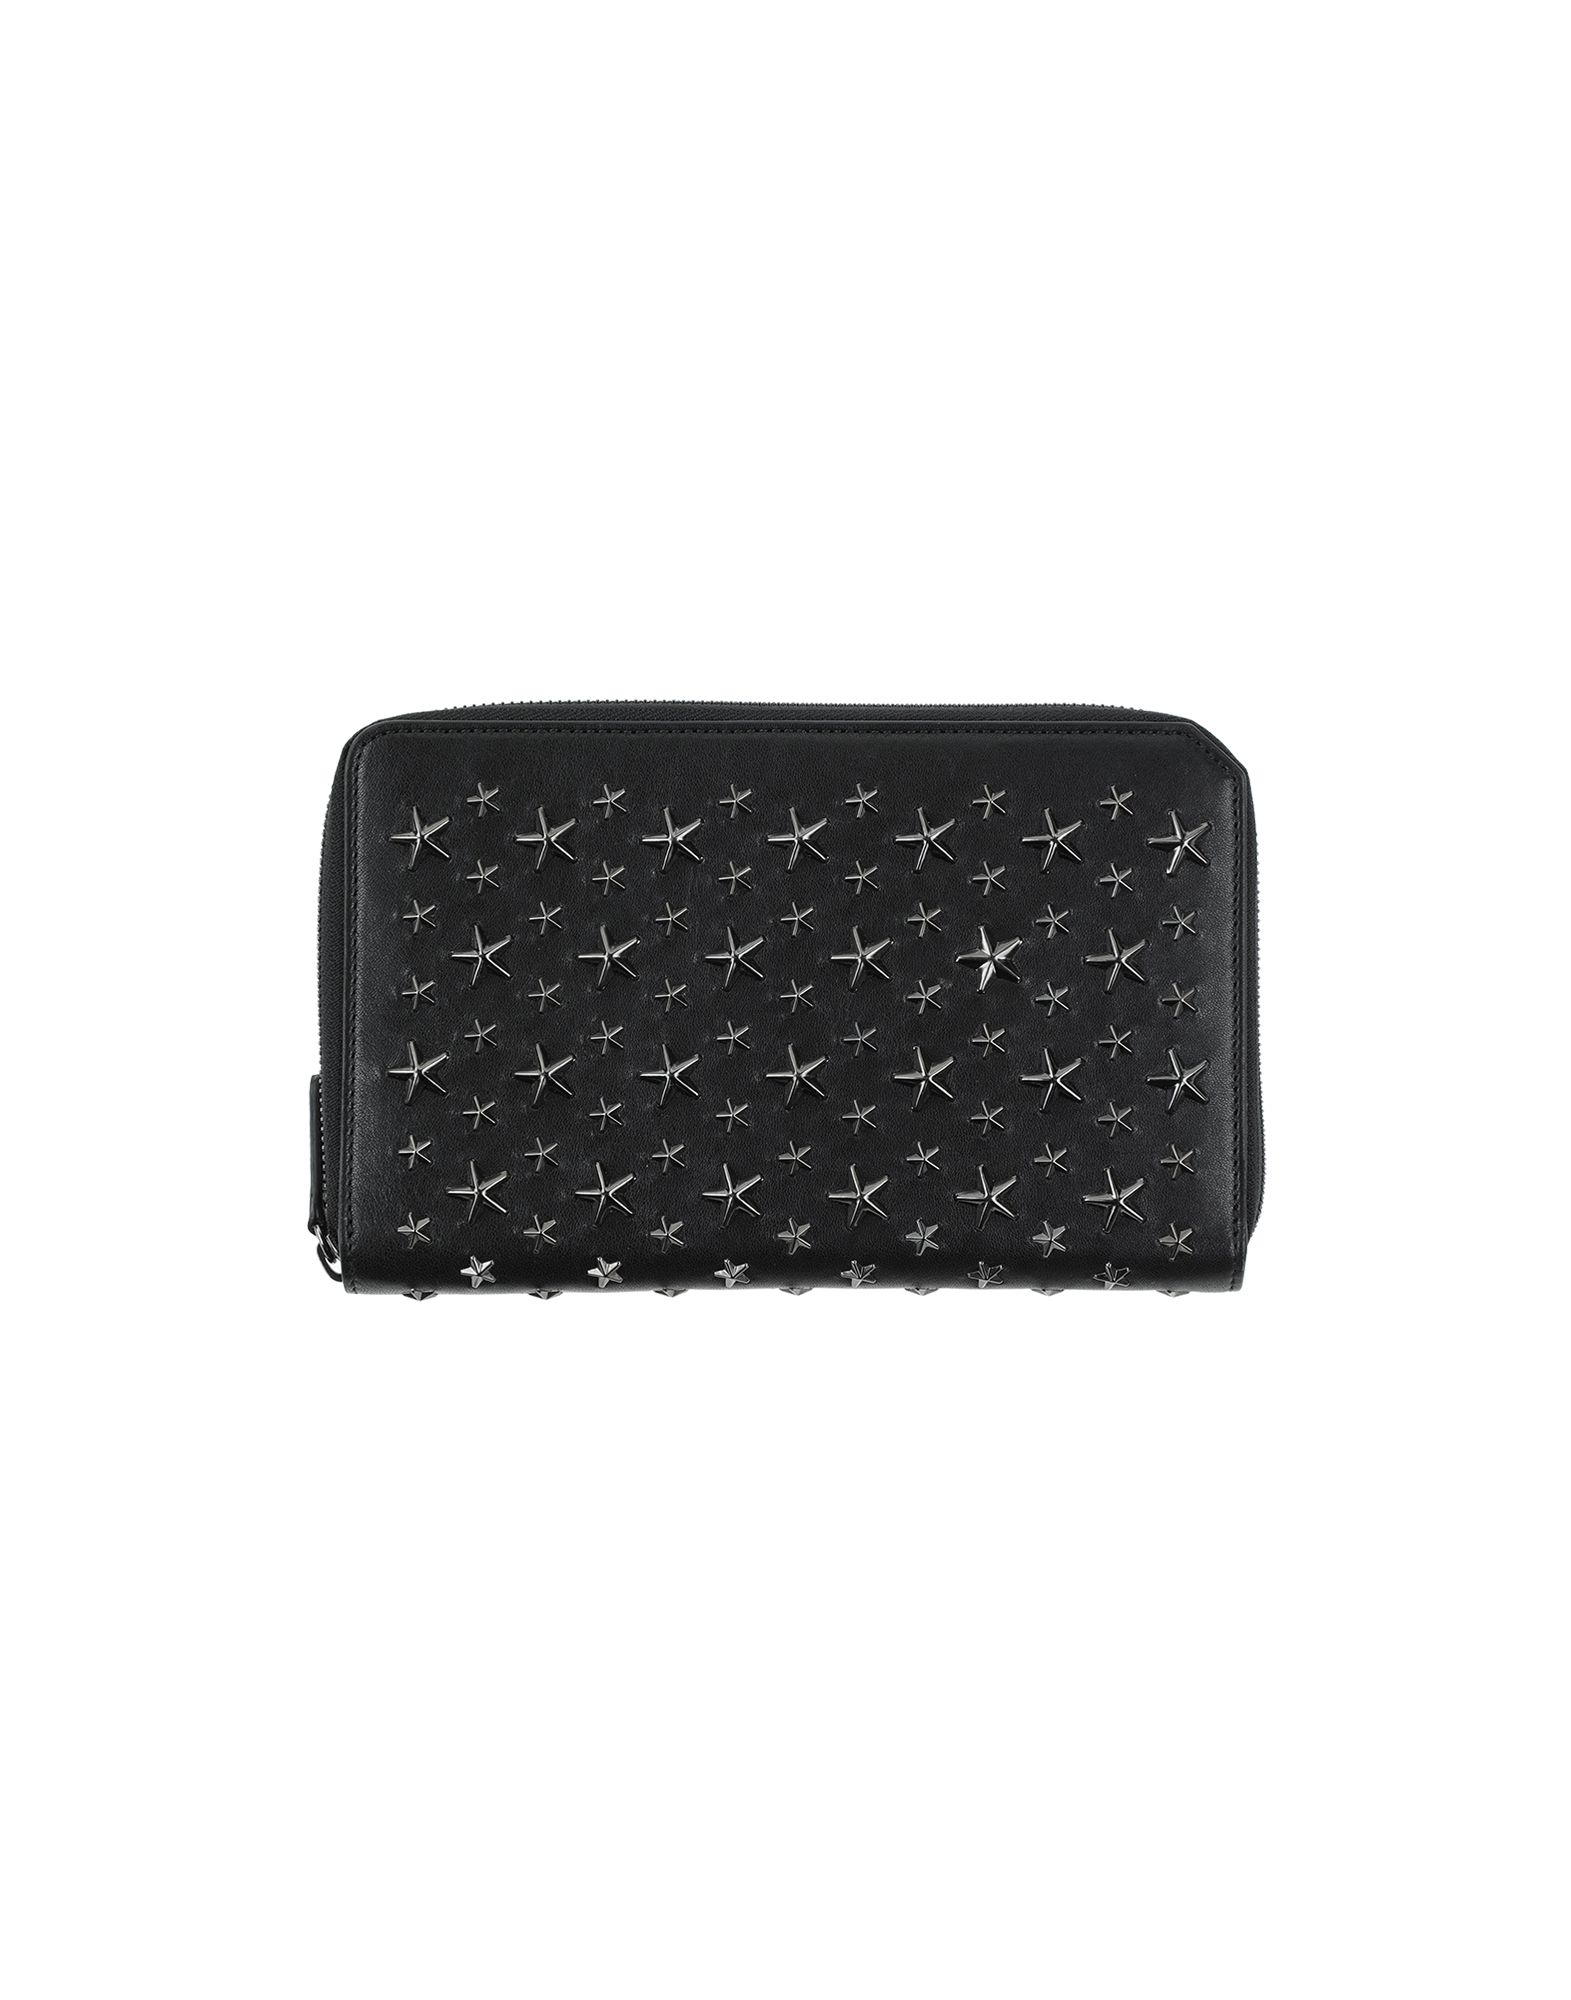 6ae7aed5677 Jimmy Choo Document Holder - Men Jimmy Choo Document Holders online ...